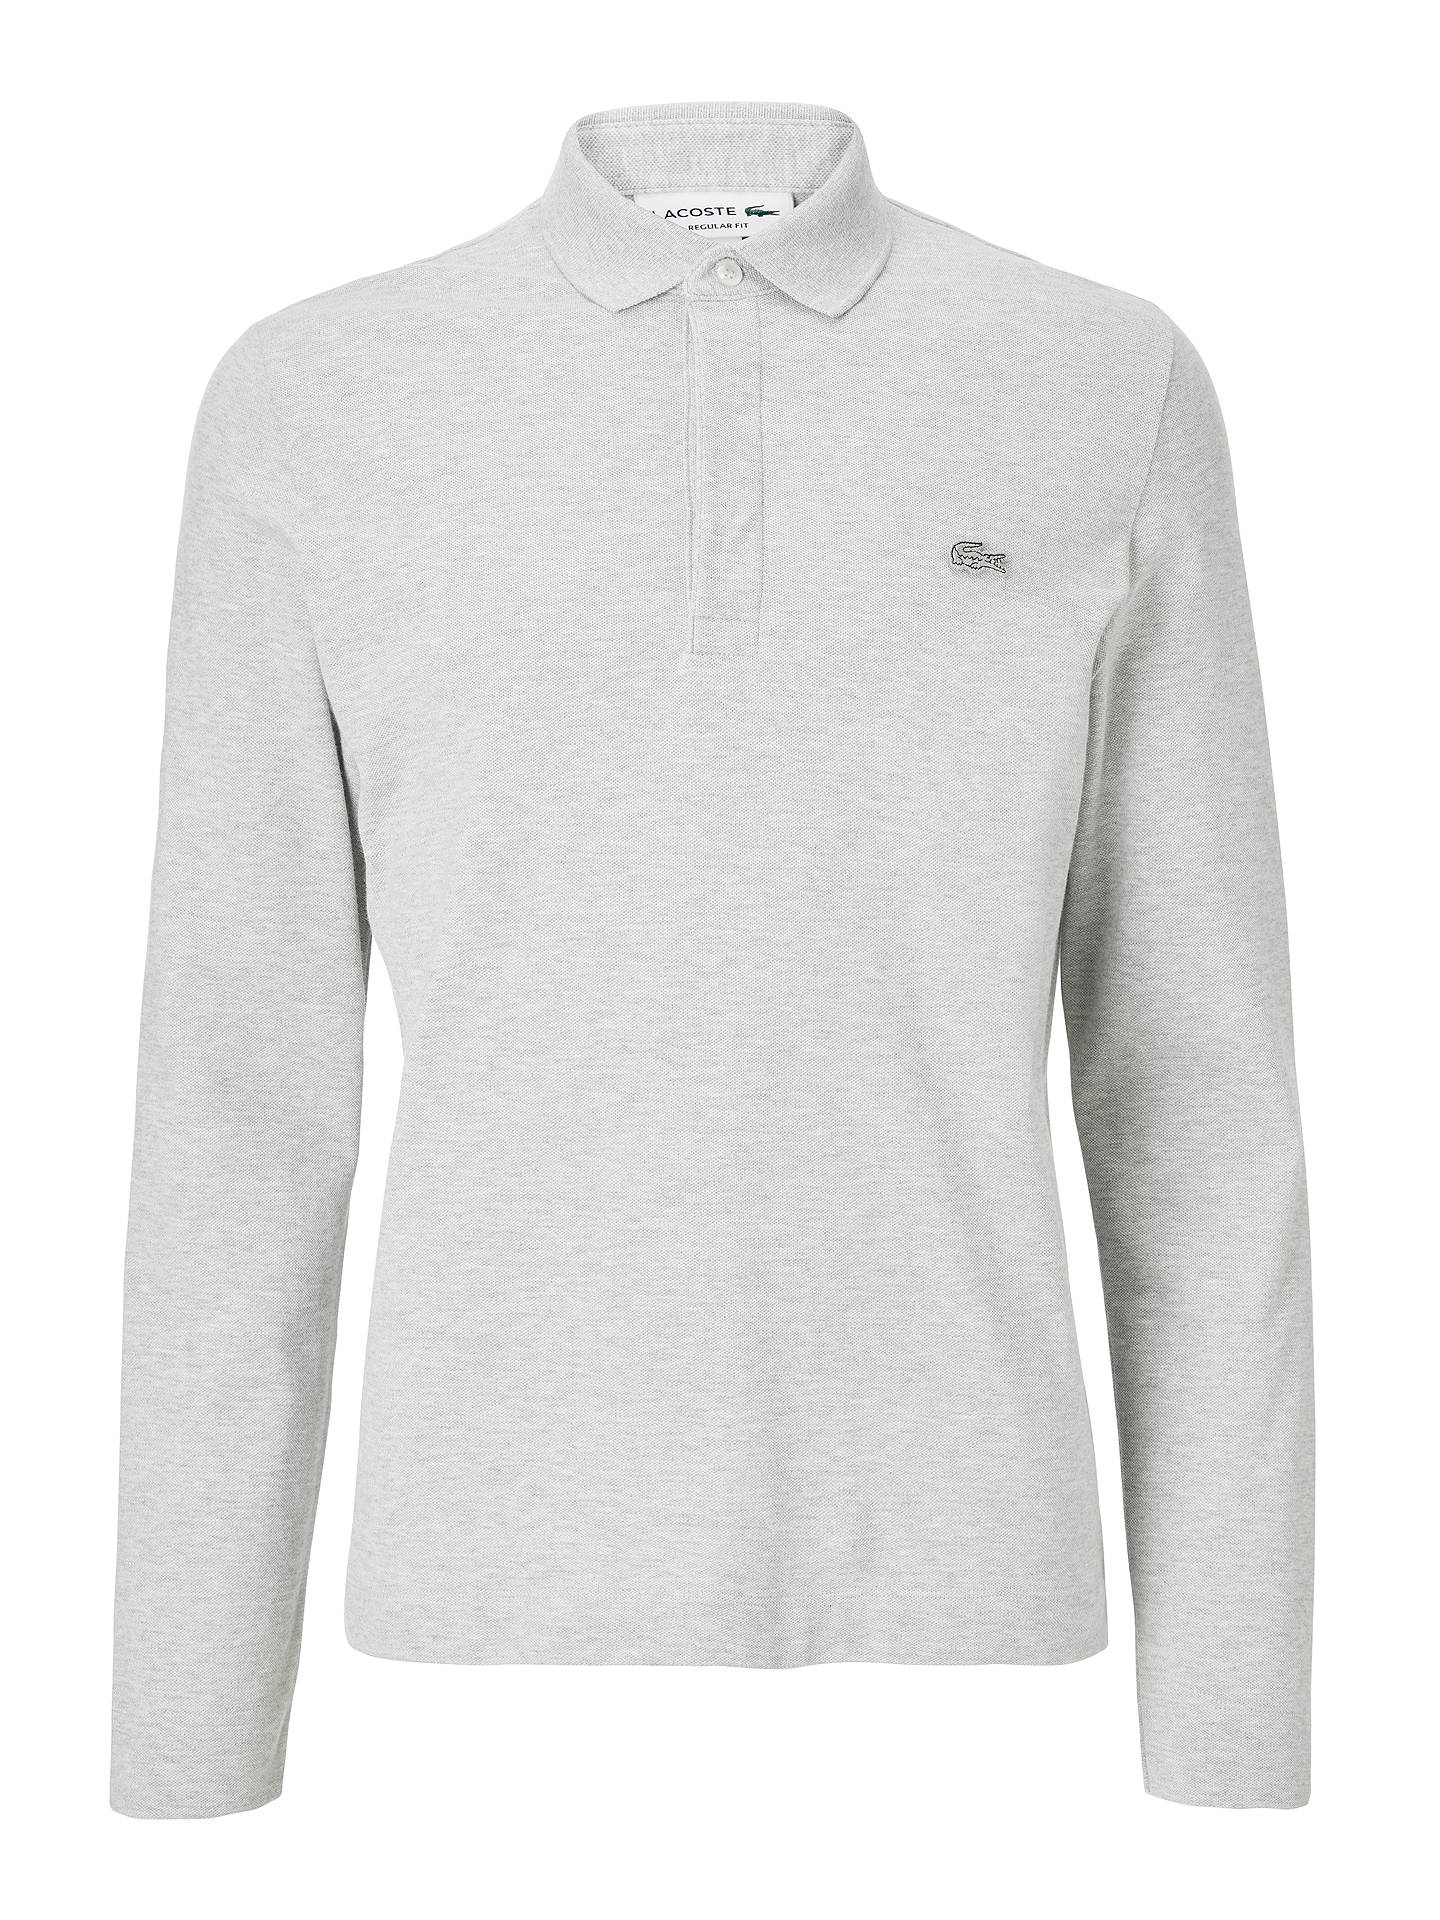 bfd9373f6 Lacoste Long Sleeve Polo Shirt